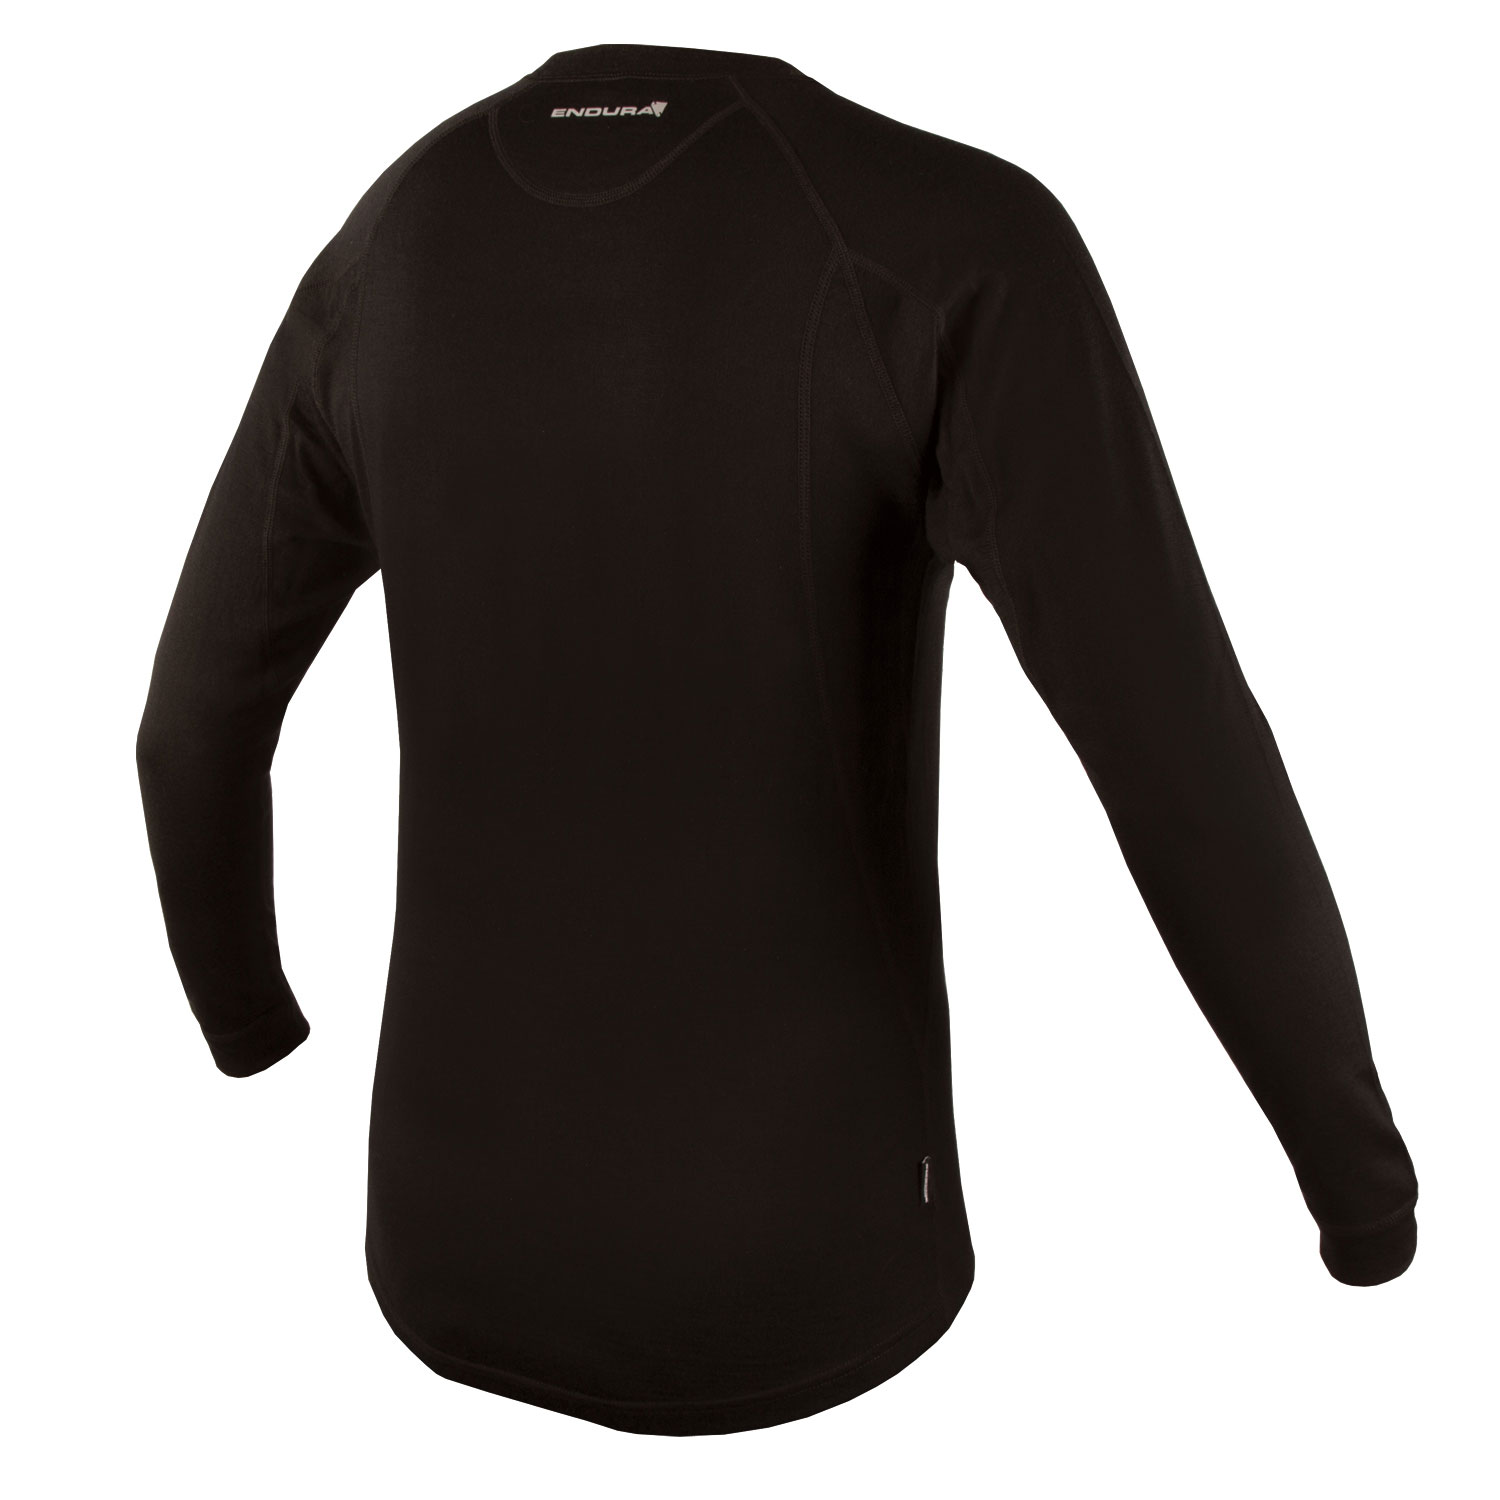 BaaBaa Merino L/S Baselayer back